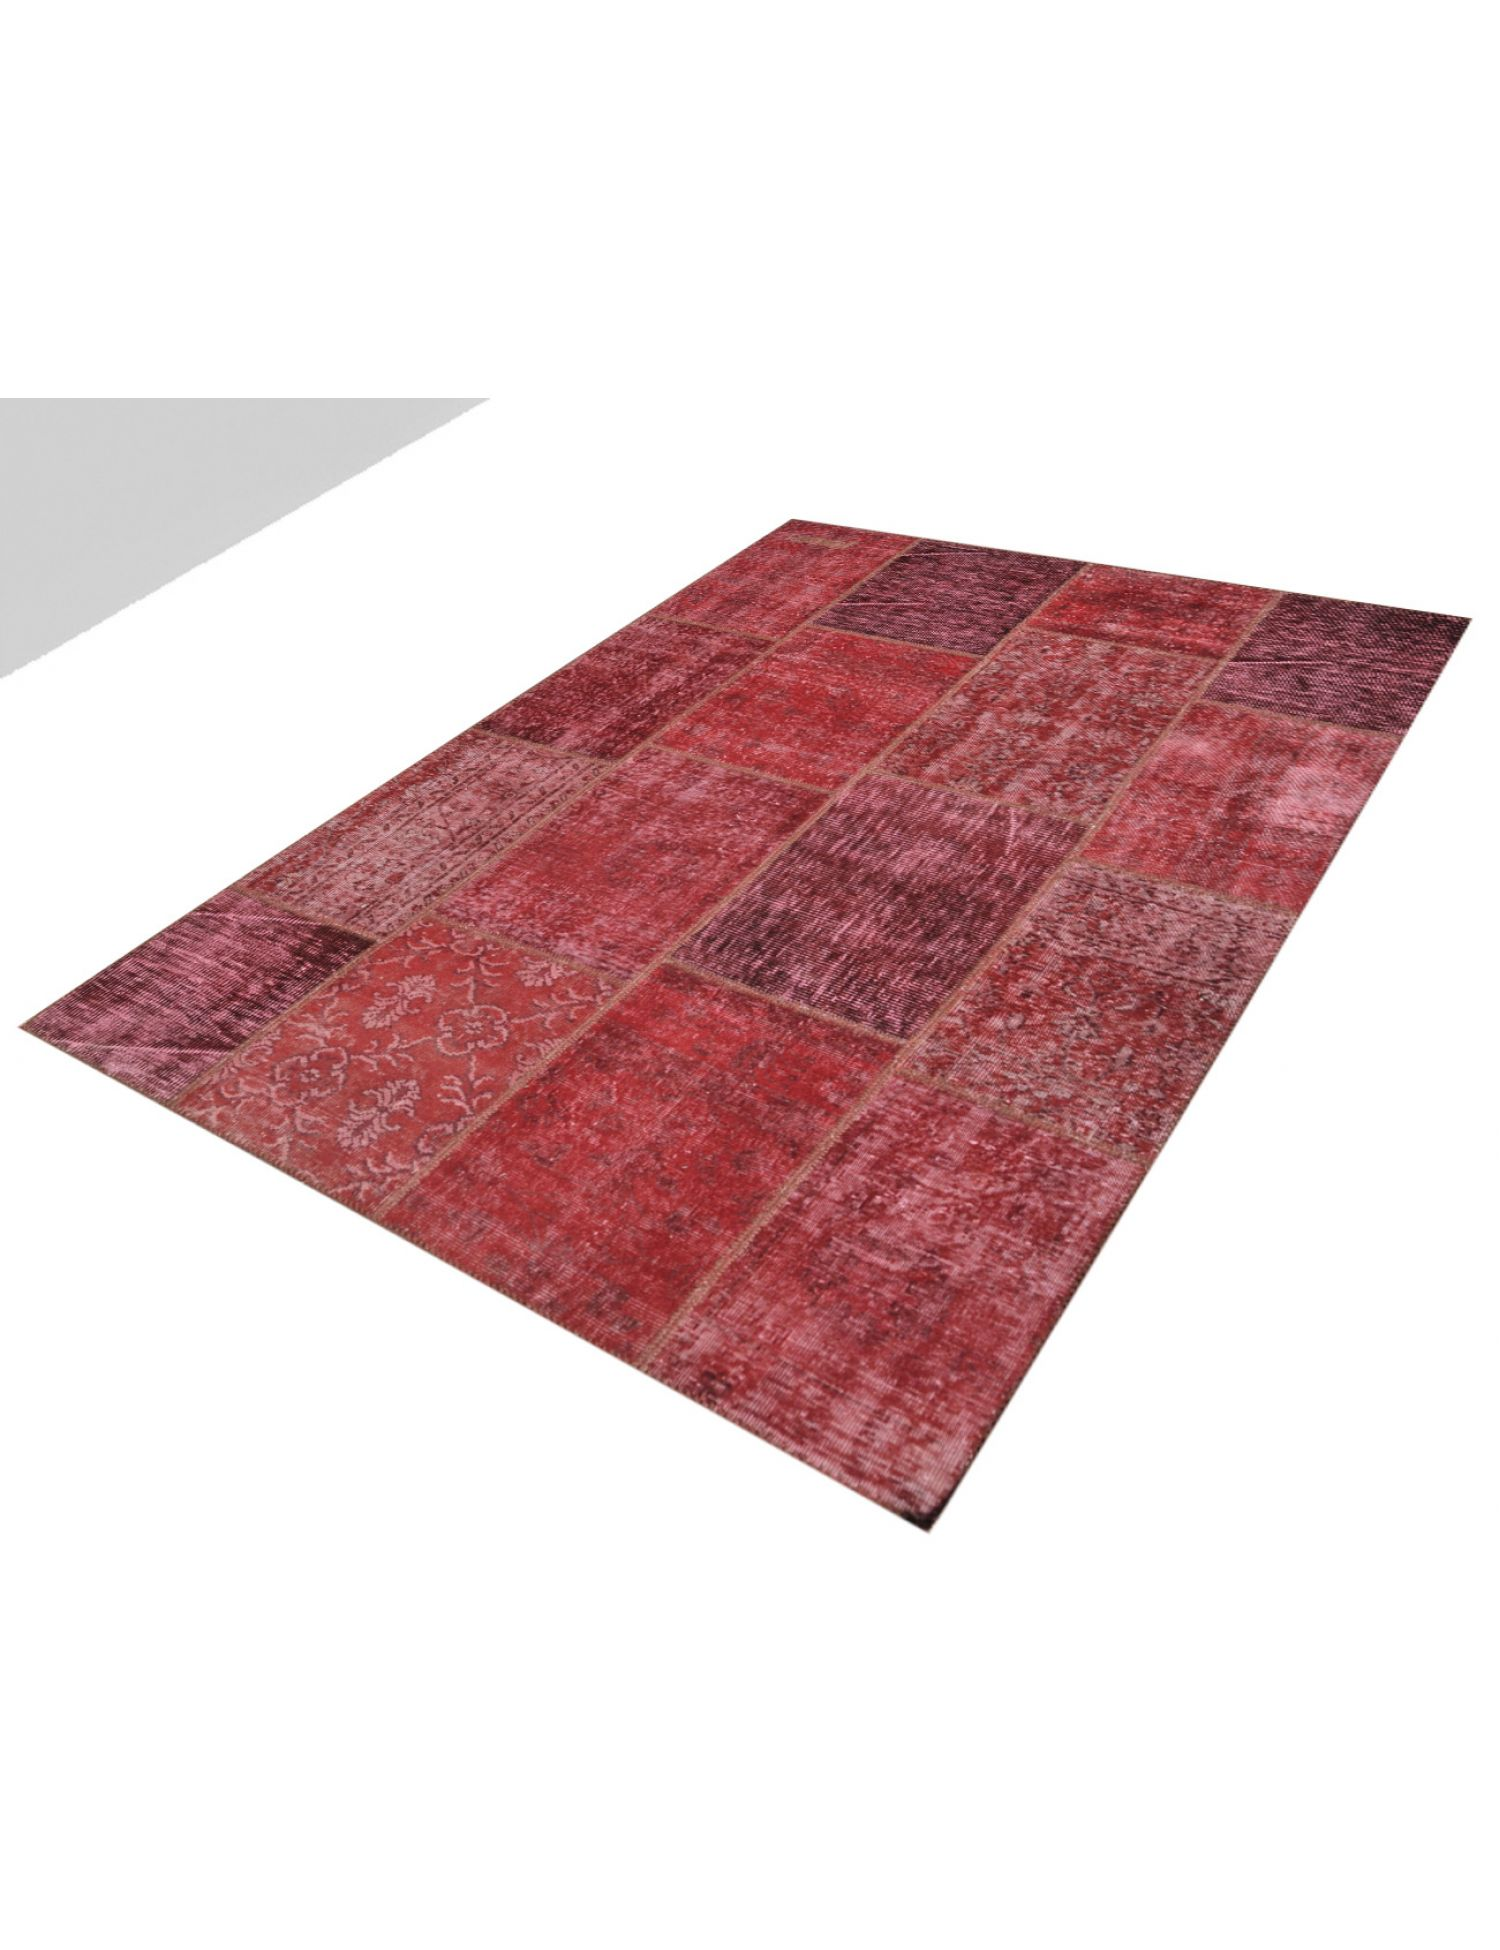 Patchwork Carpet  red <br/>240 x 170 cm